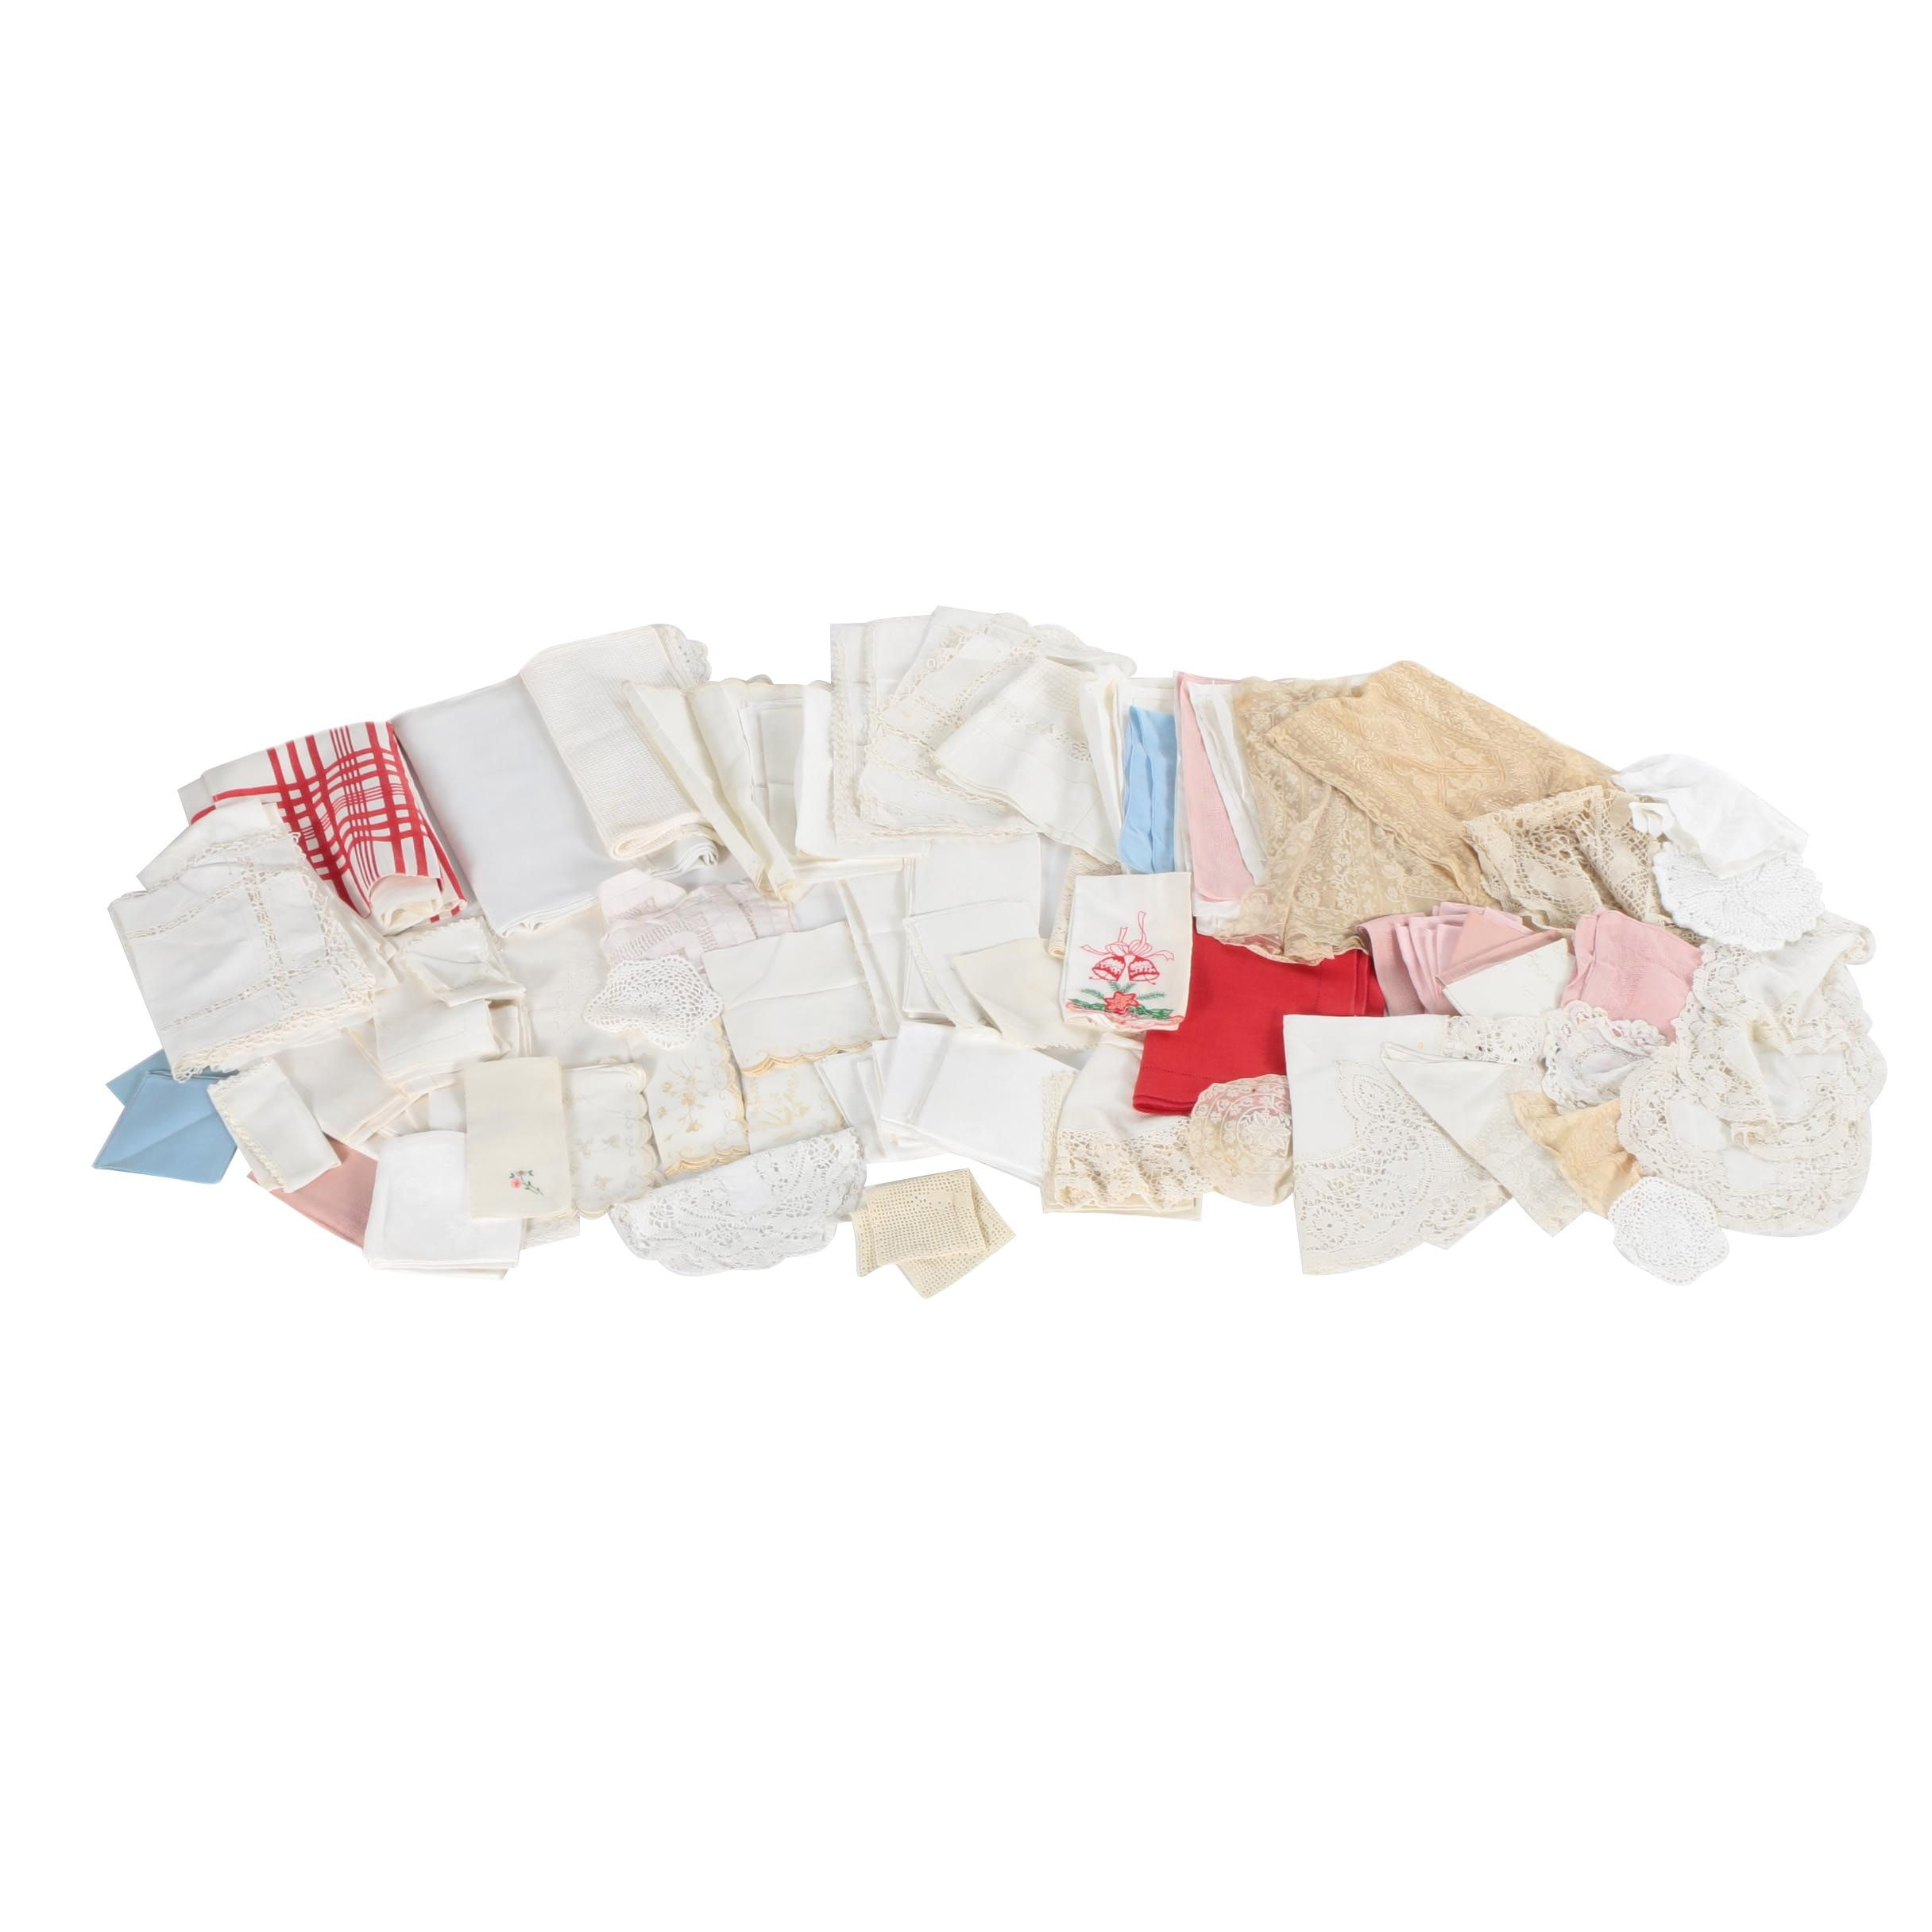 Assorted Kitchen and Table Linens